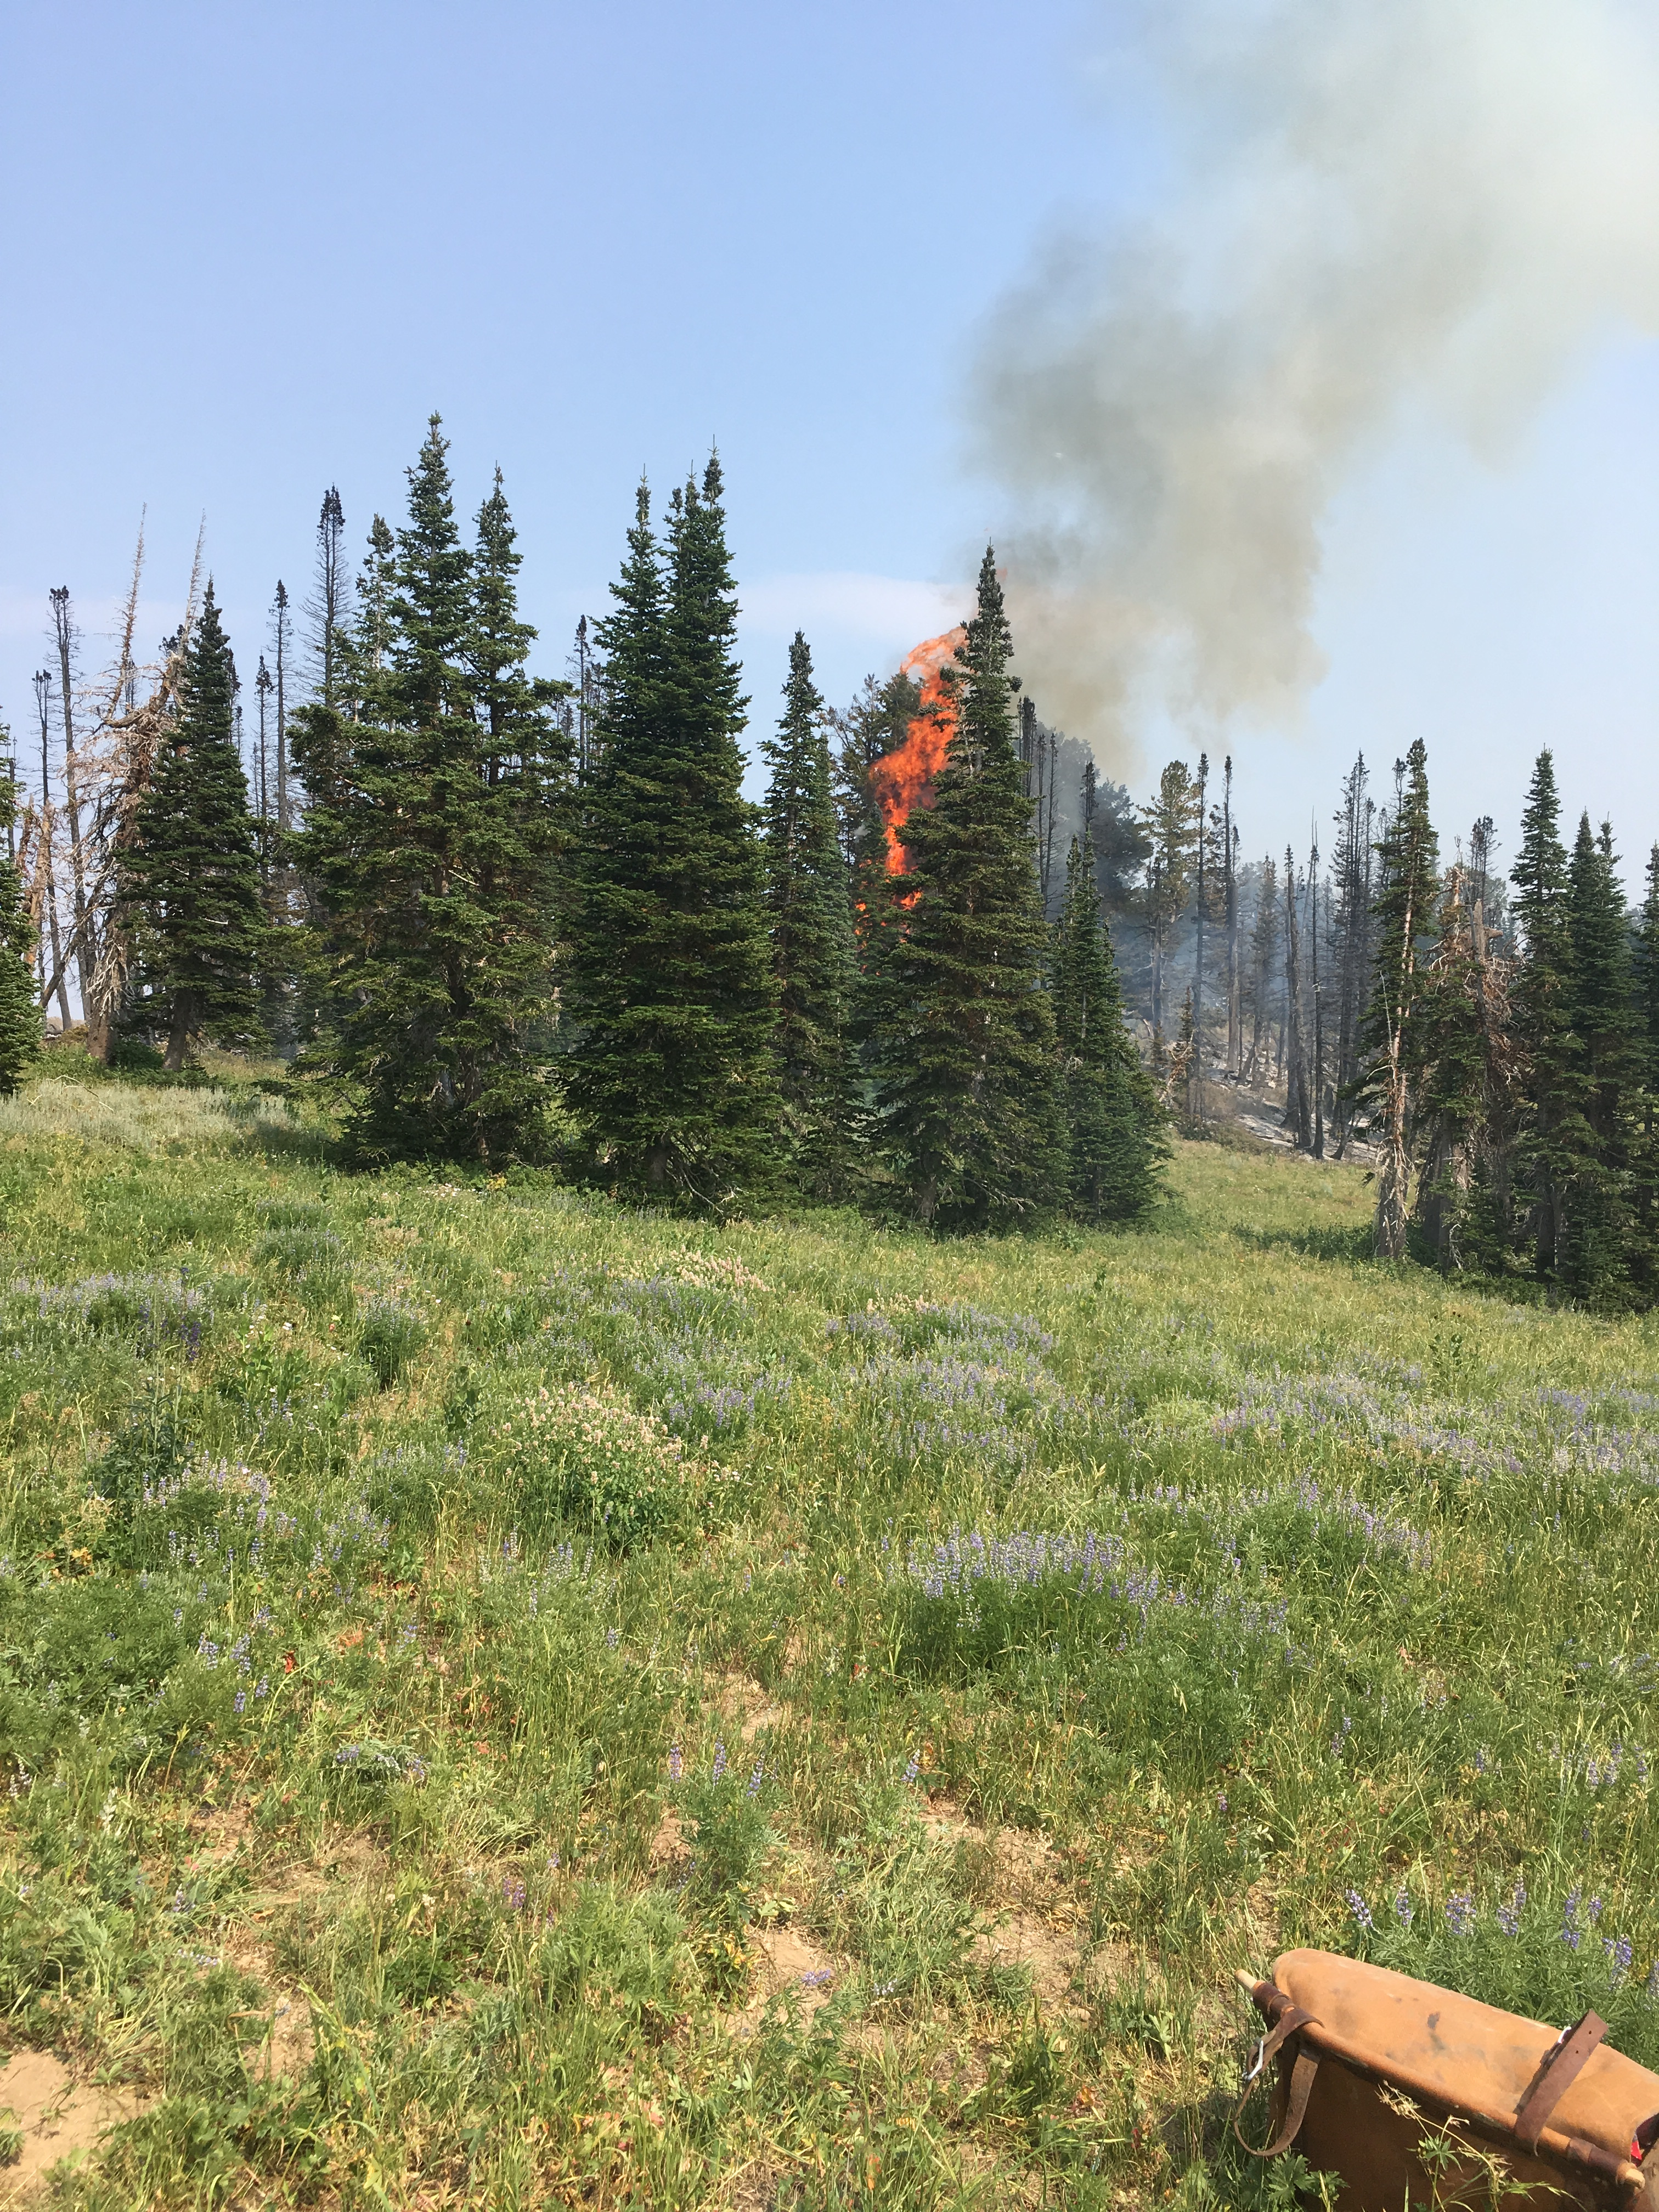 Photo of the Jardine fire located in the Mt. Naomi Wilderness fire on the Logan Ranger District